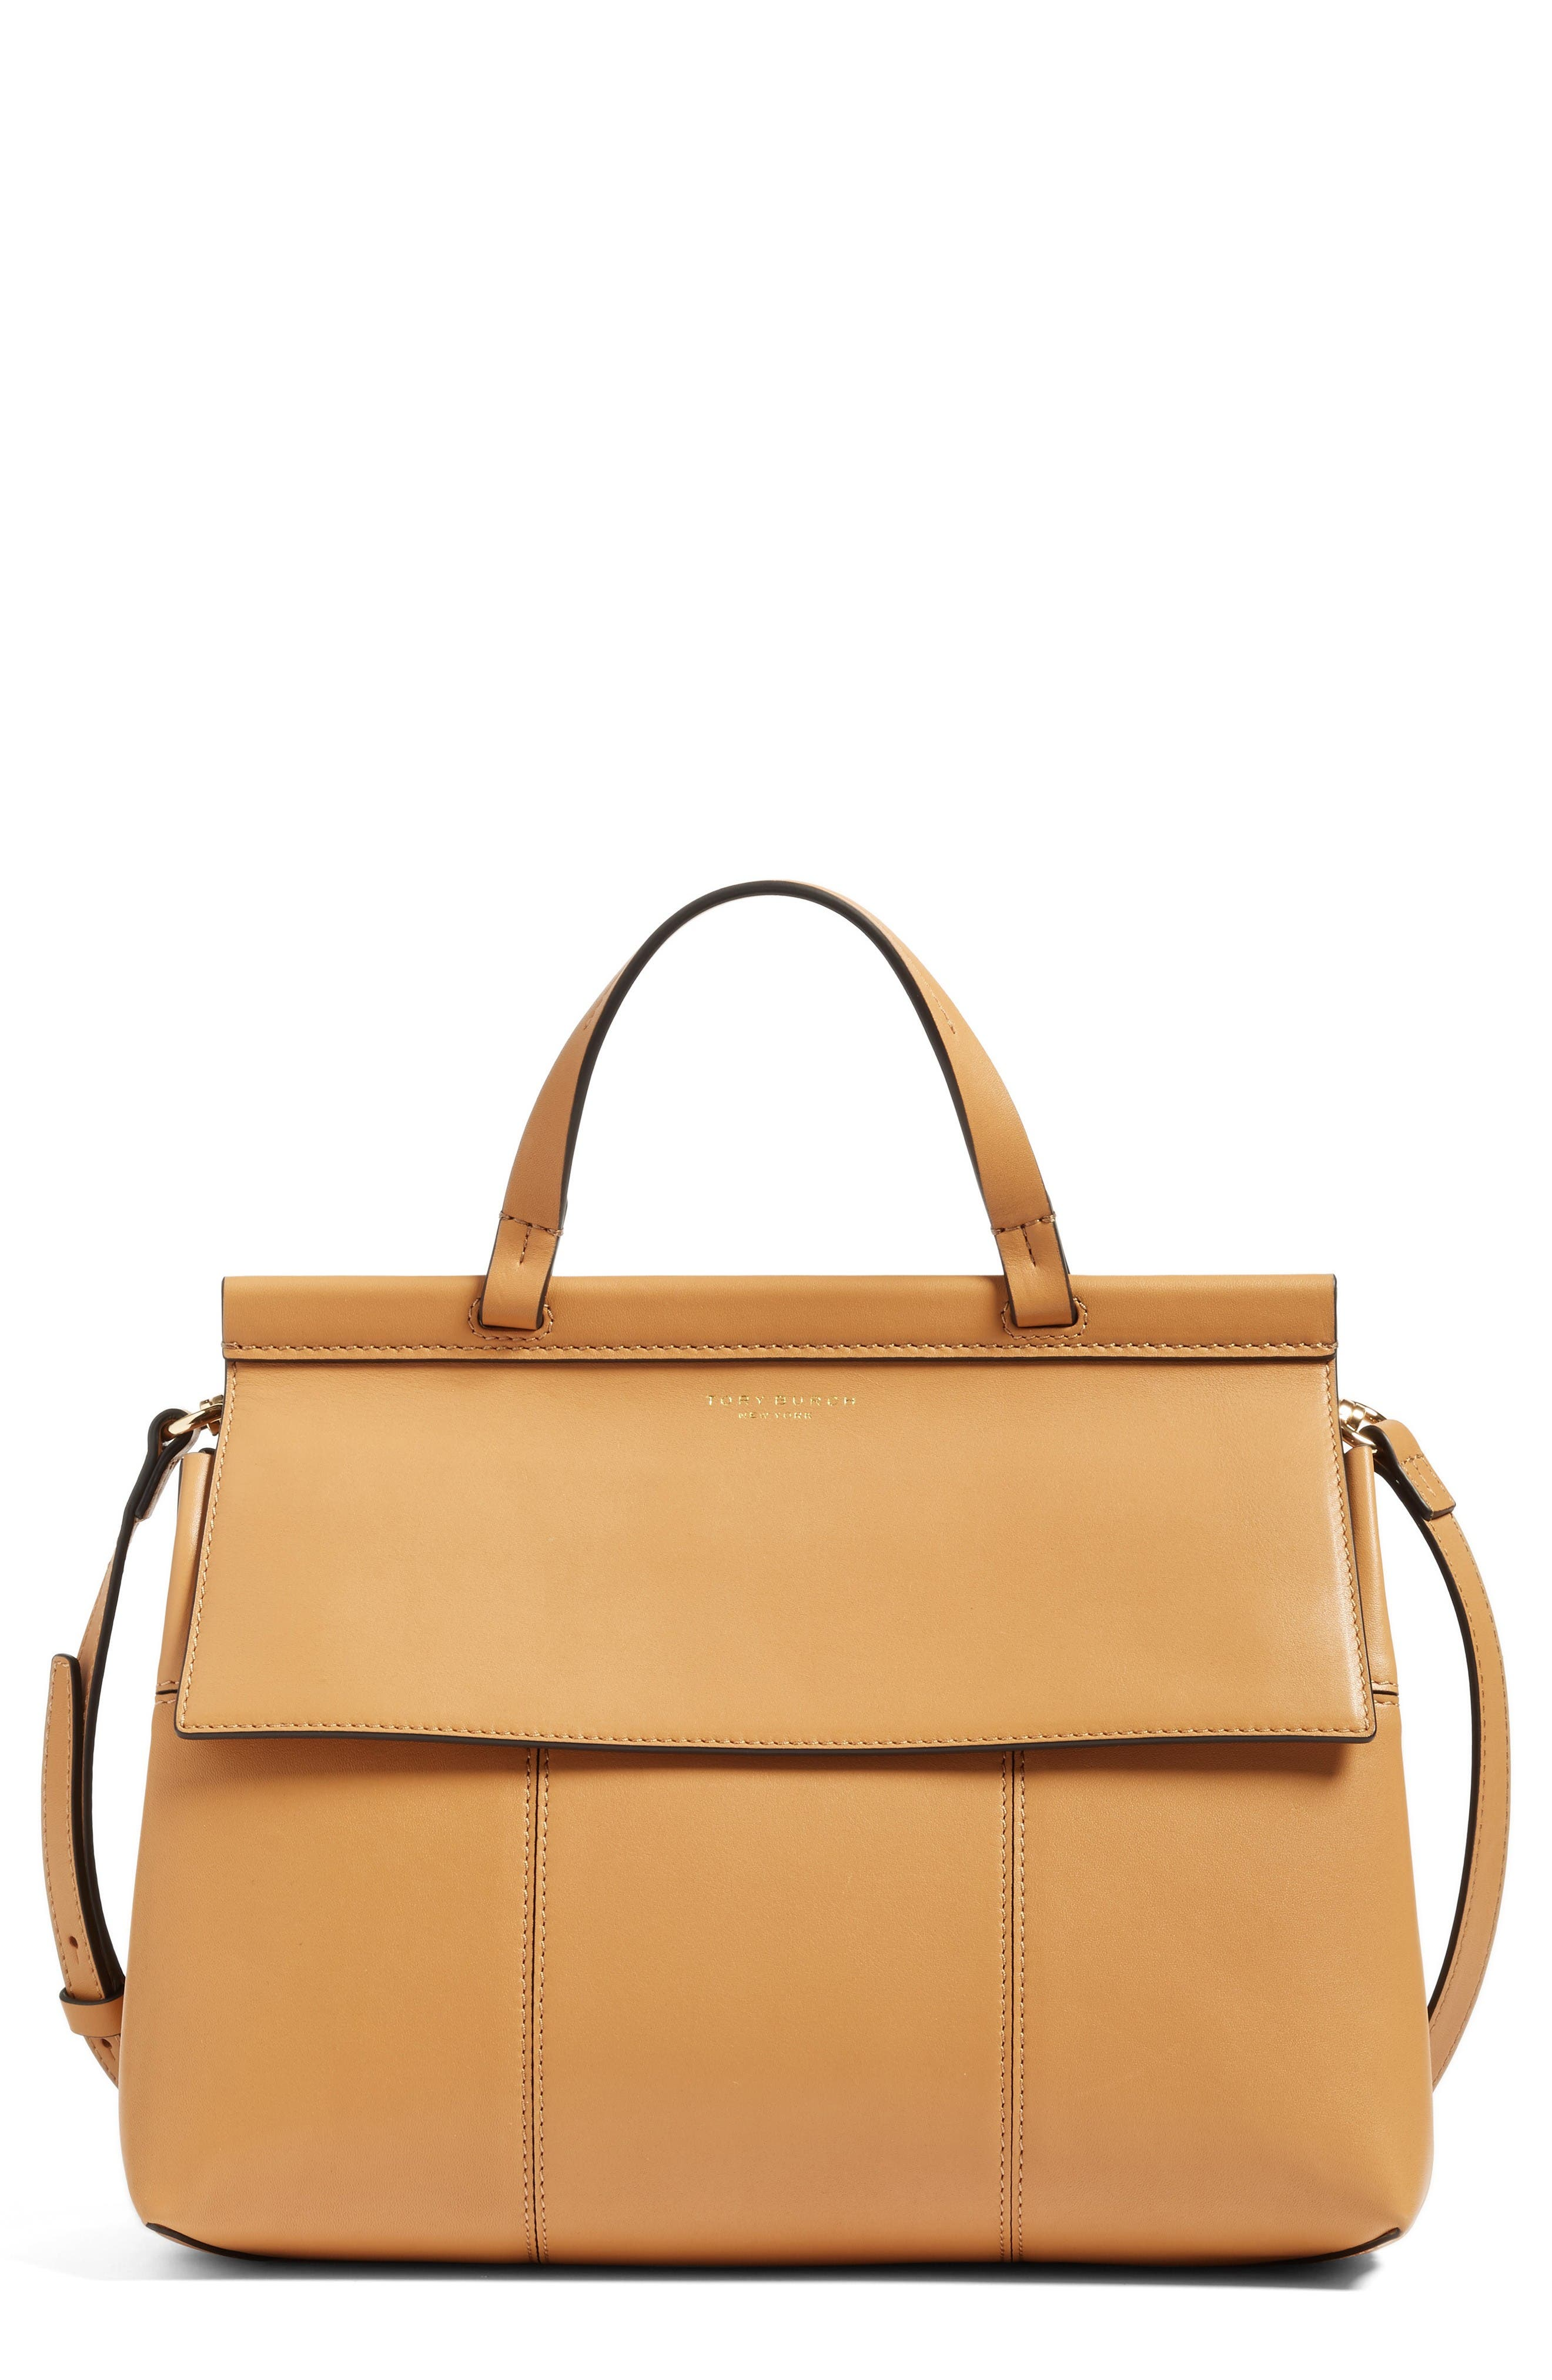 Alternate Image 1 Selected - Tory Burch Block T Leather Top Handle Satchel